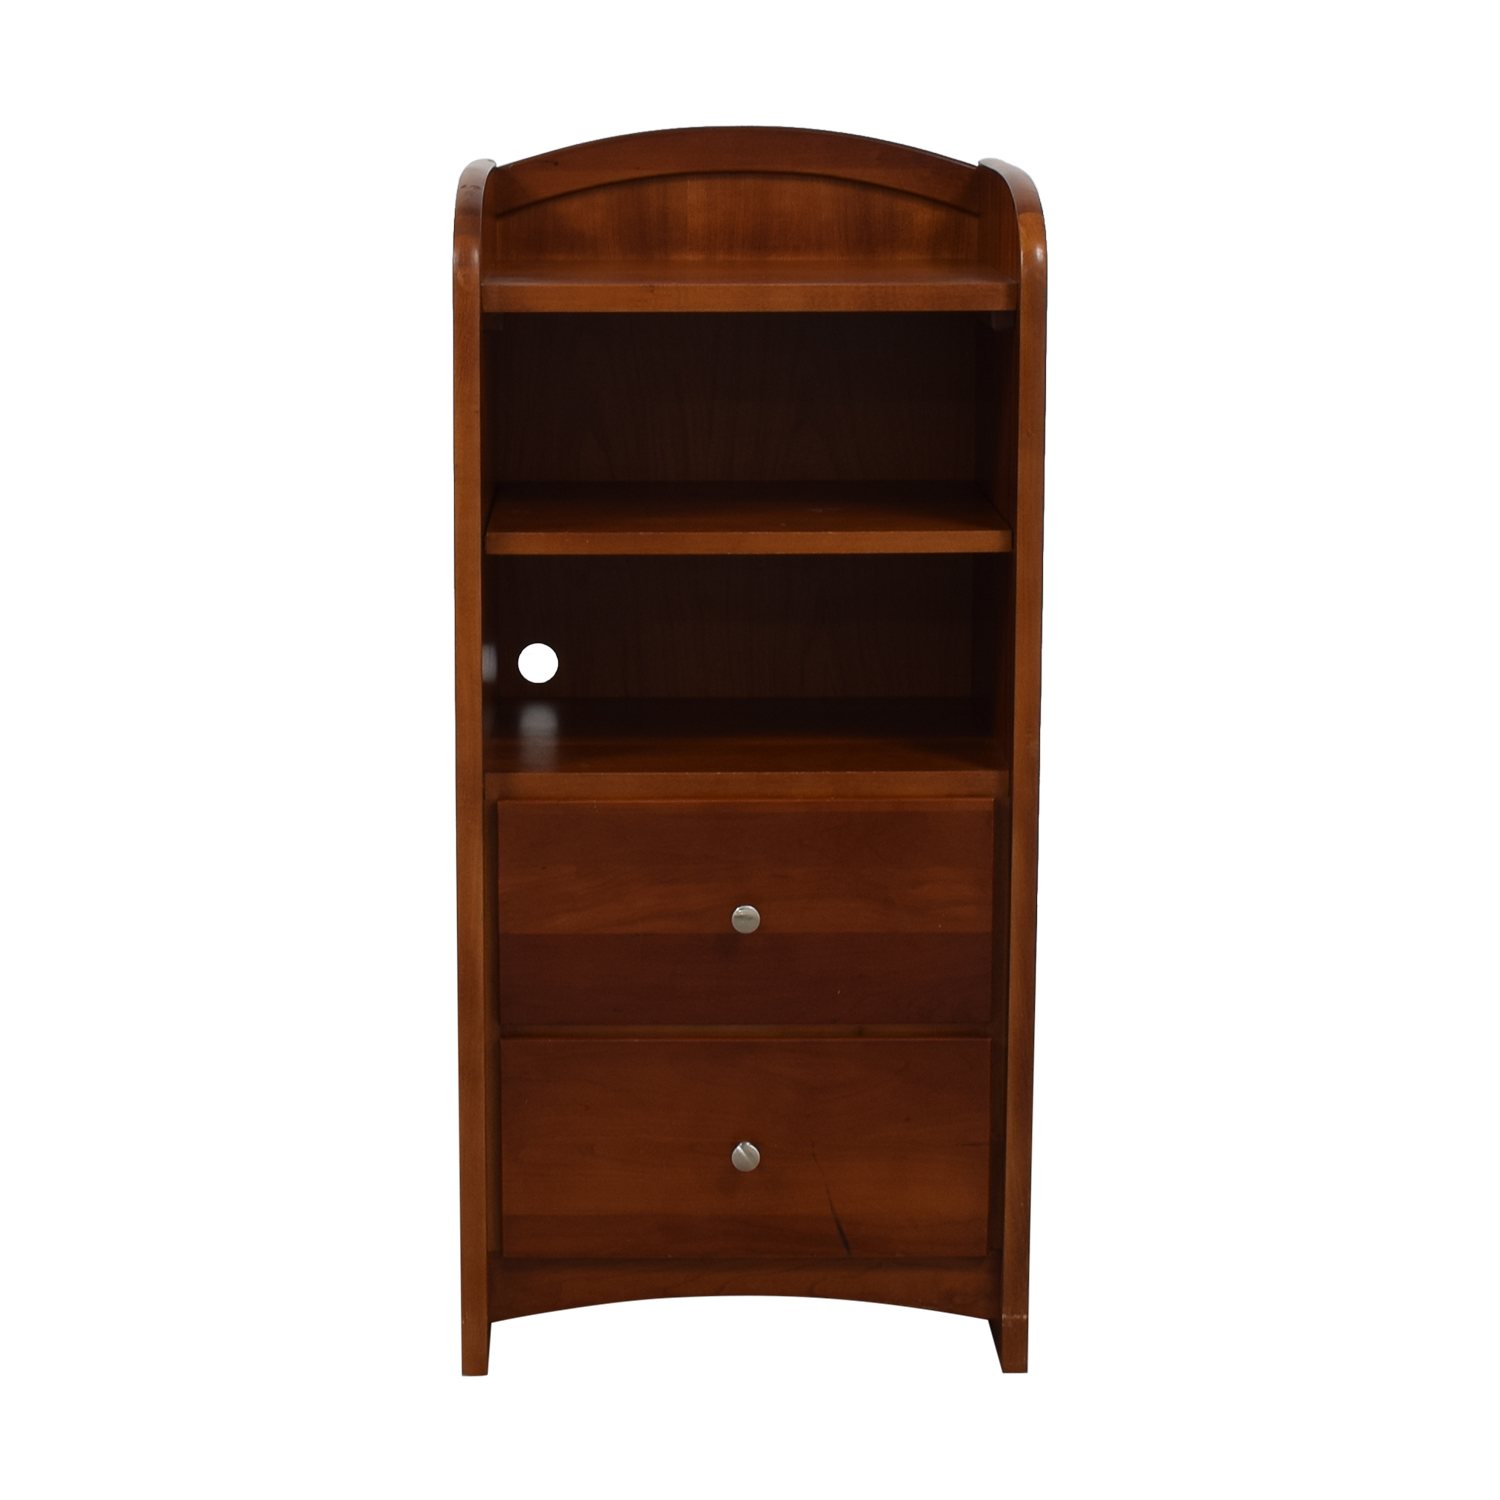 Stanley Furniture Stanley Furniture Young America Collection Short Cabinet nyc